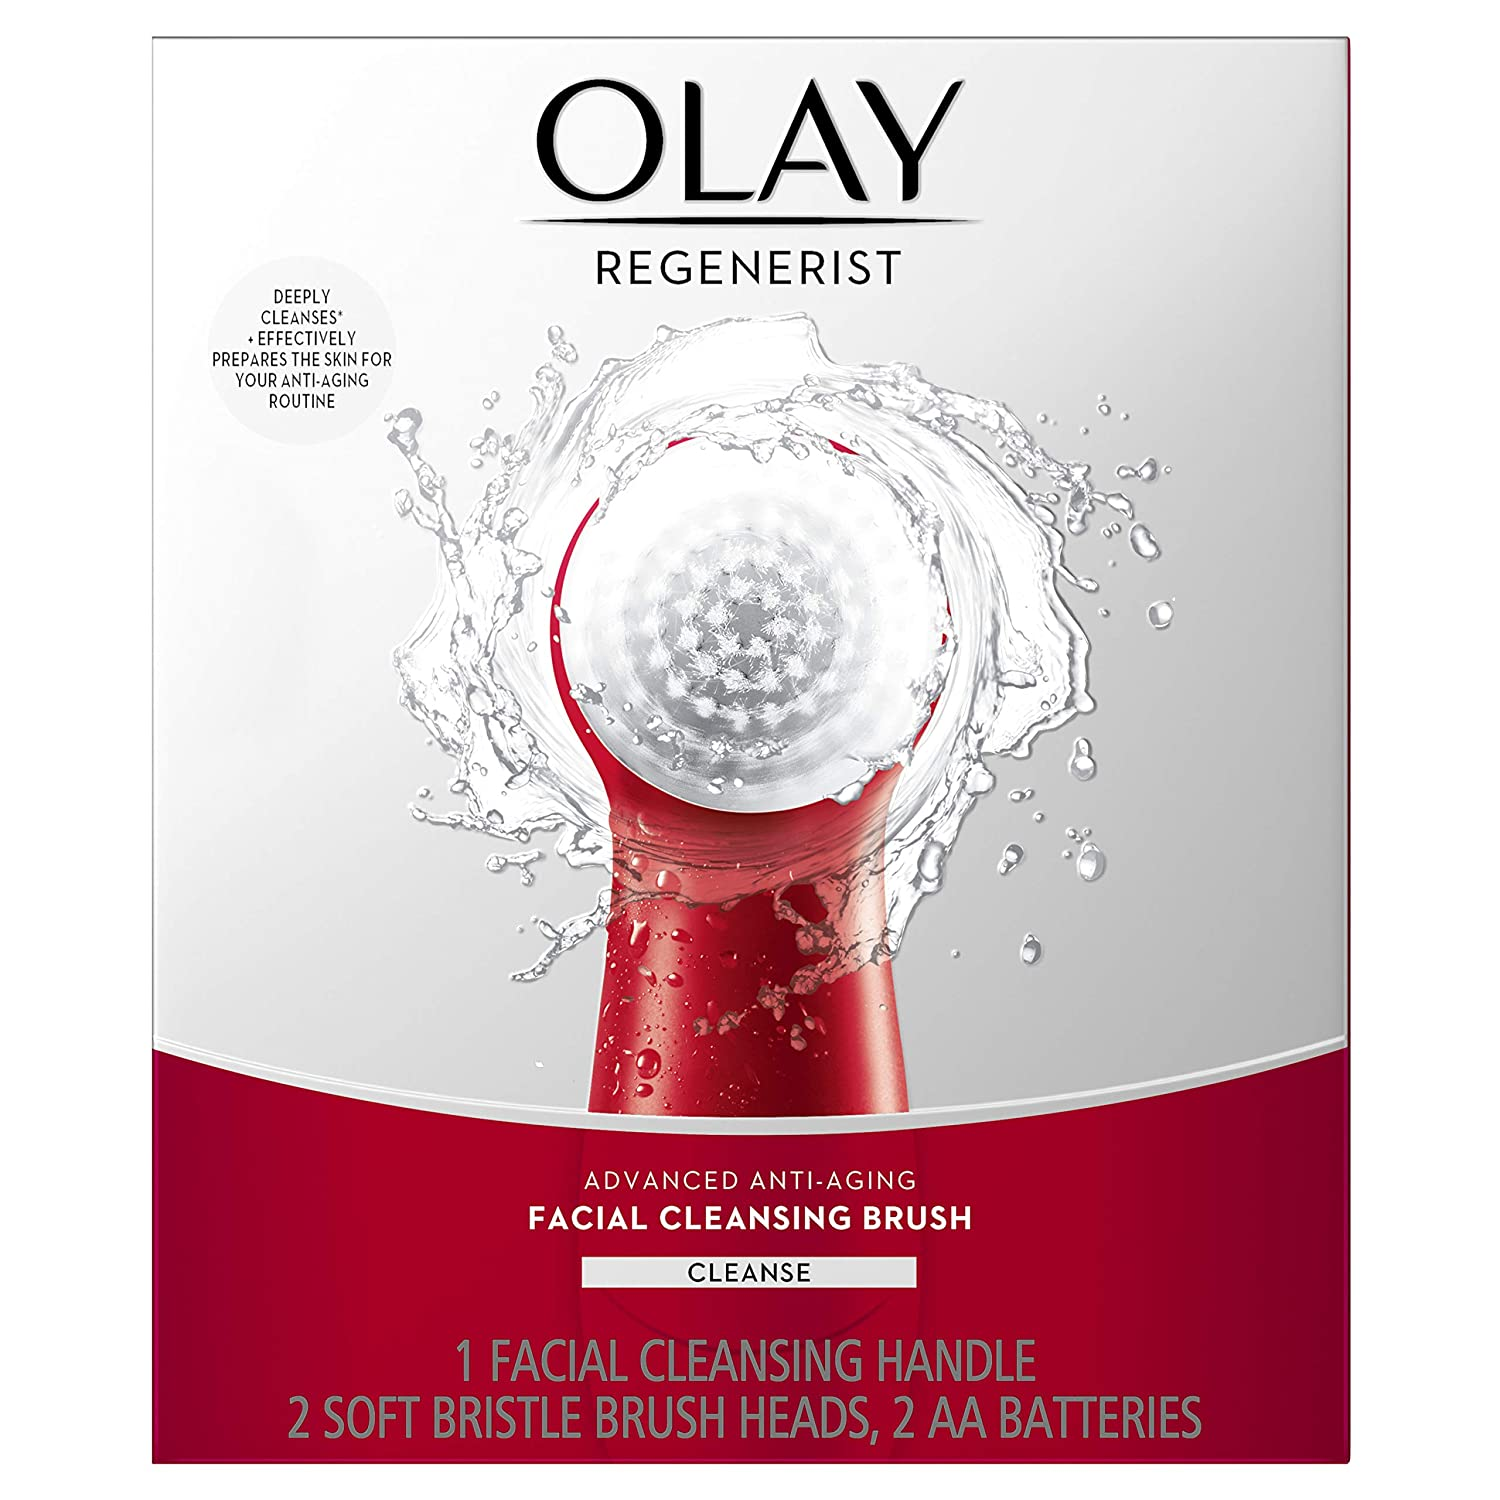 Facial Cleansing Brush By Olay Regenerist Face Exfoliator With 2